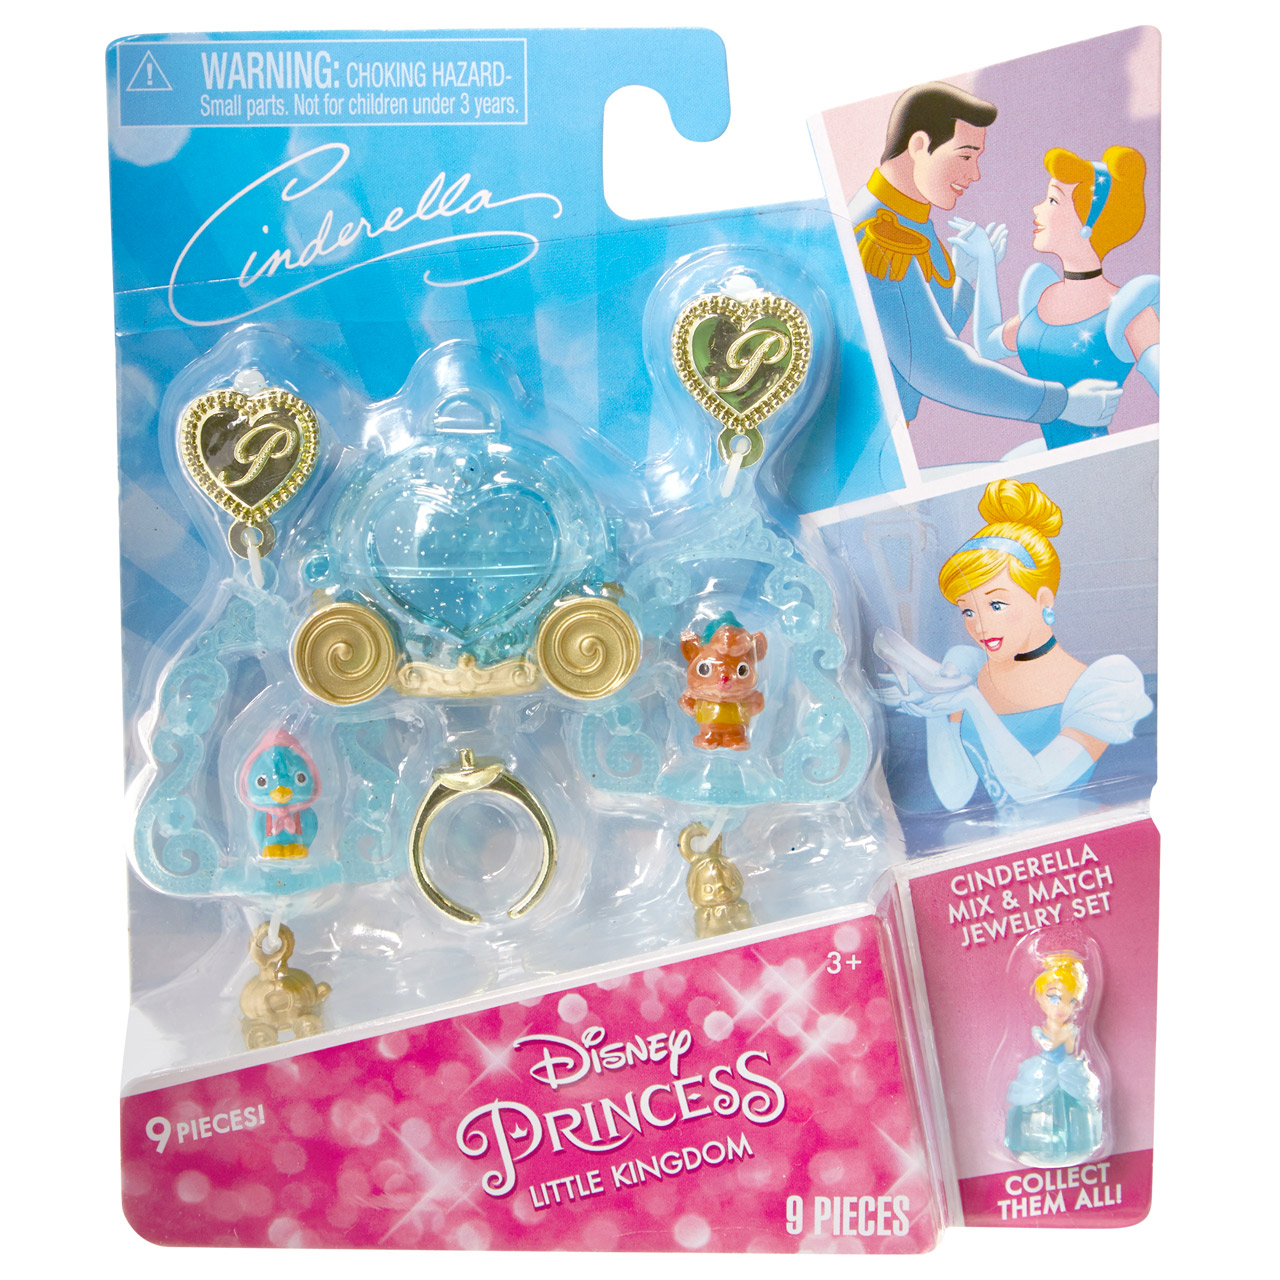 Disney Princess Little Kingdom Nail Polish Set – Papillon